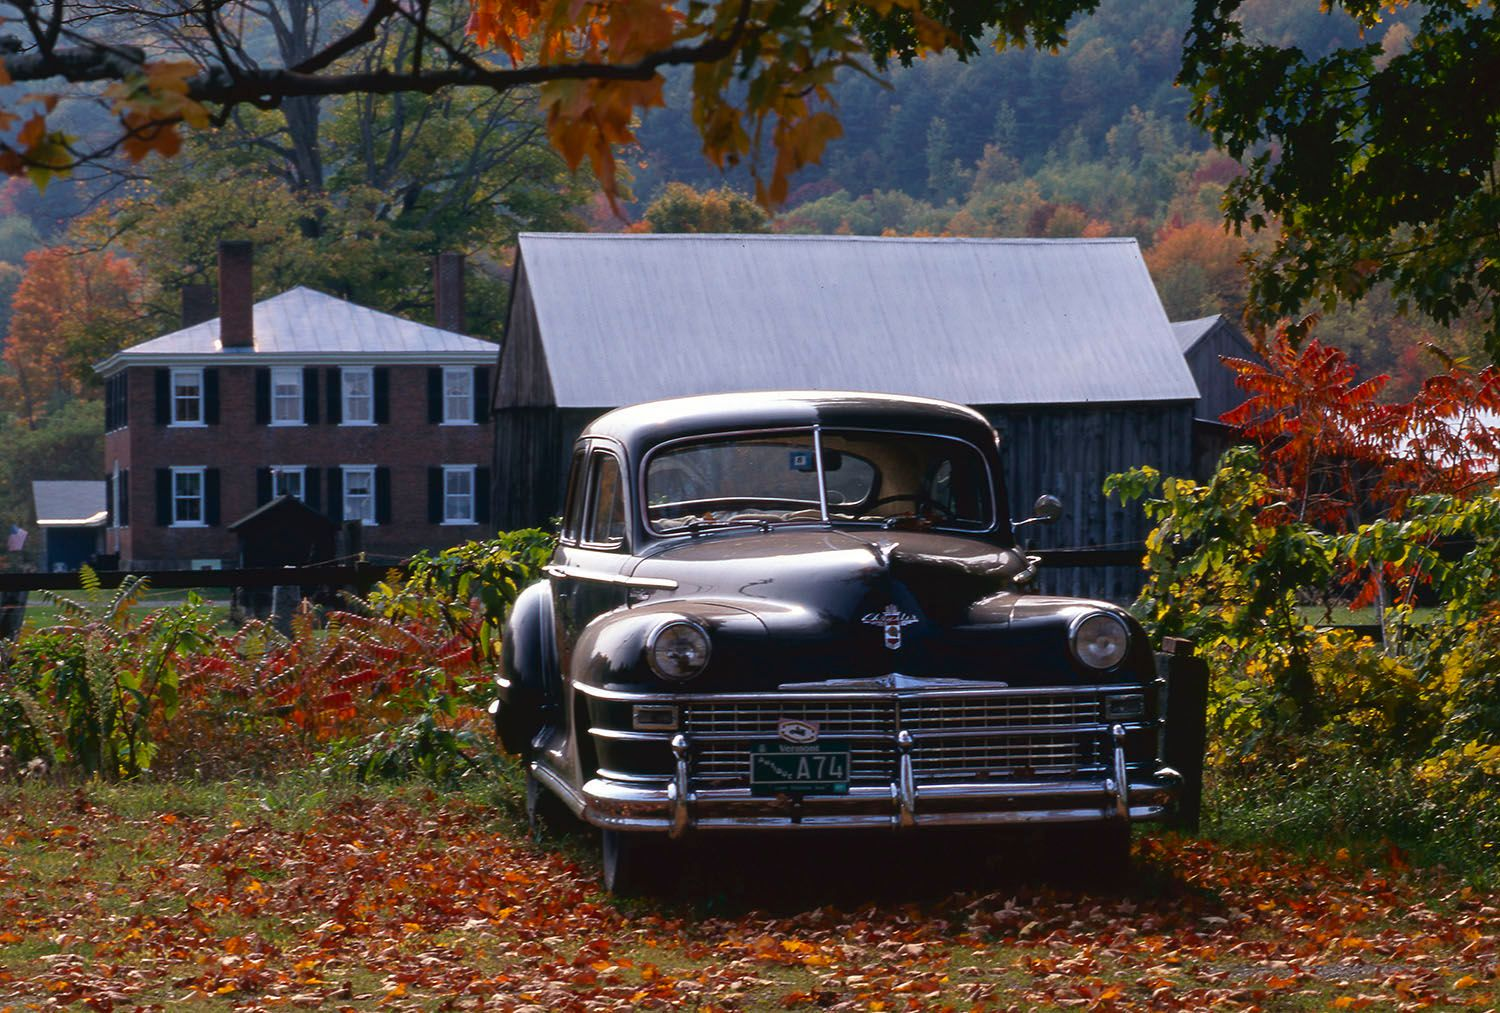 American classic Chrysler car in Vermont